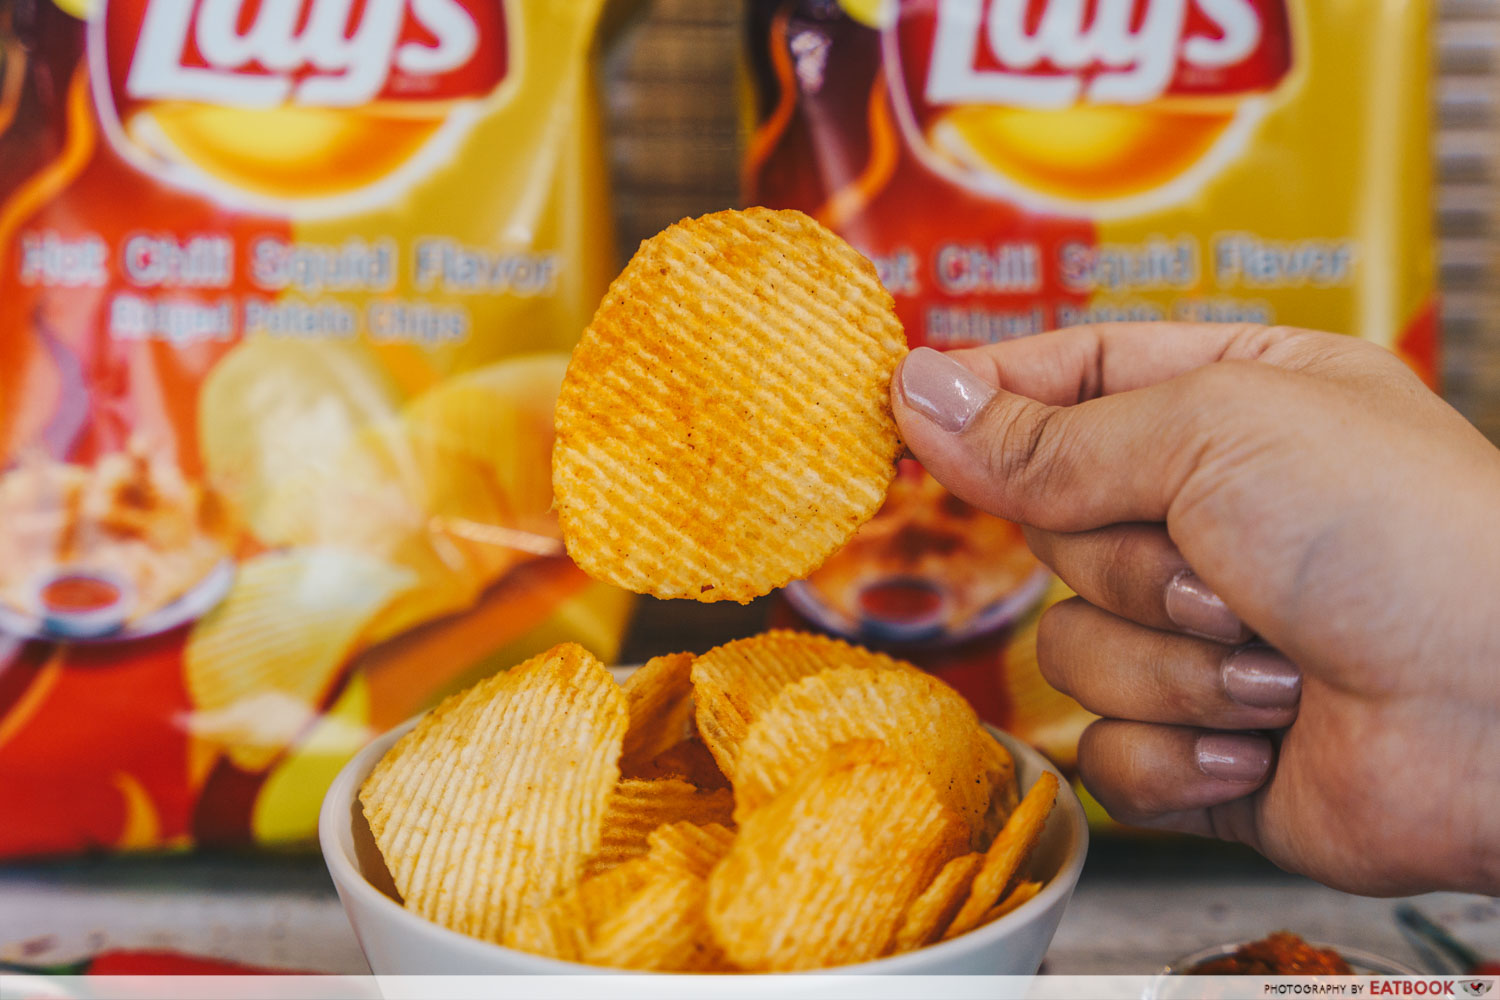 lay's potato chips - hot chilli squid